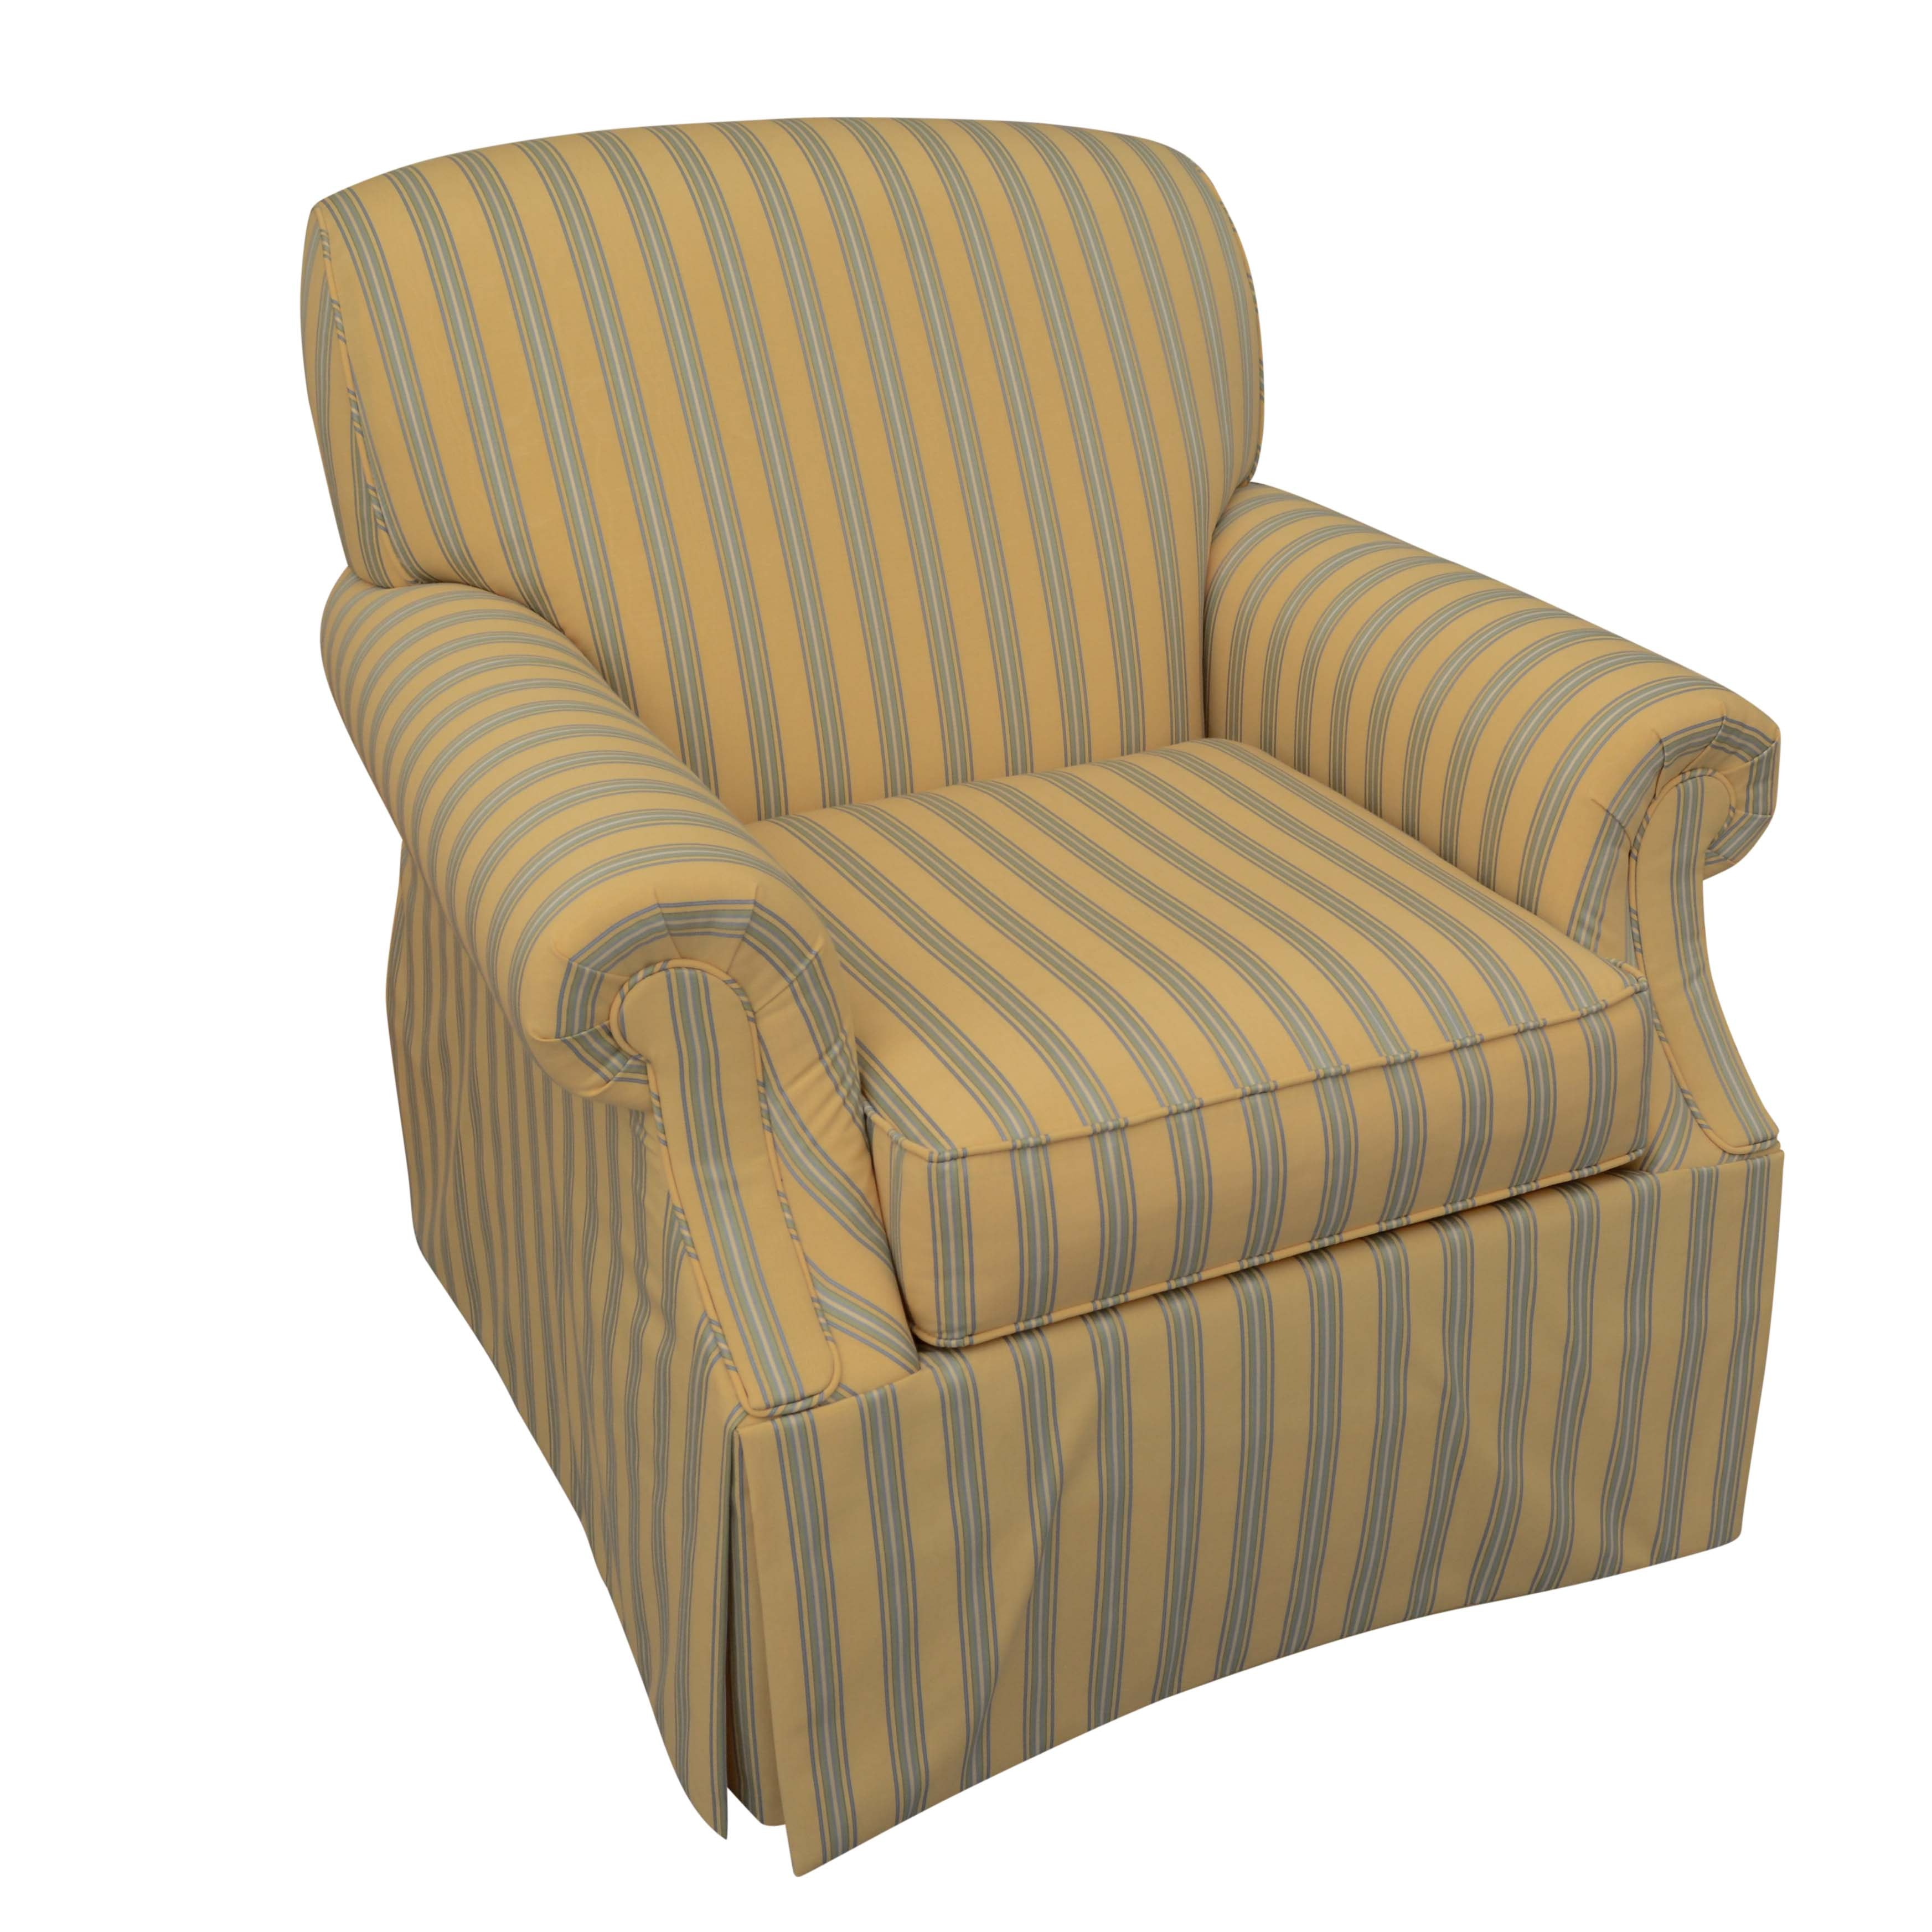 Upholstered Lounge Chair by Kravet